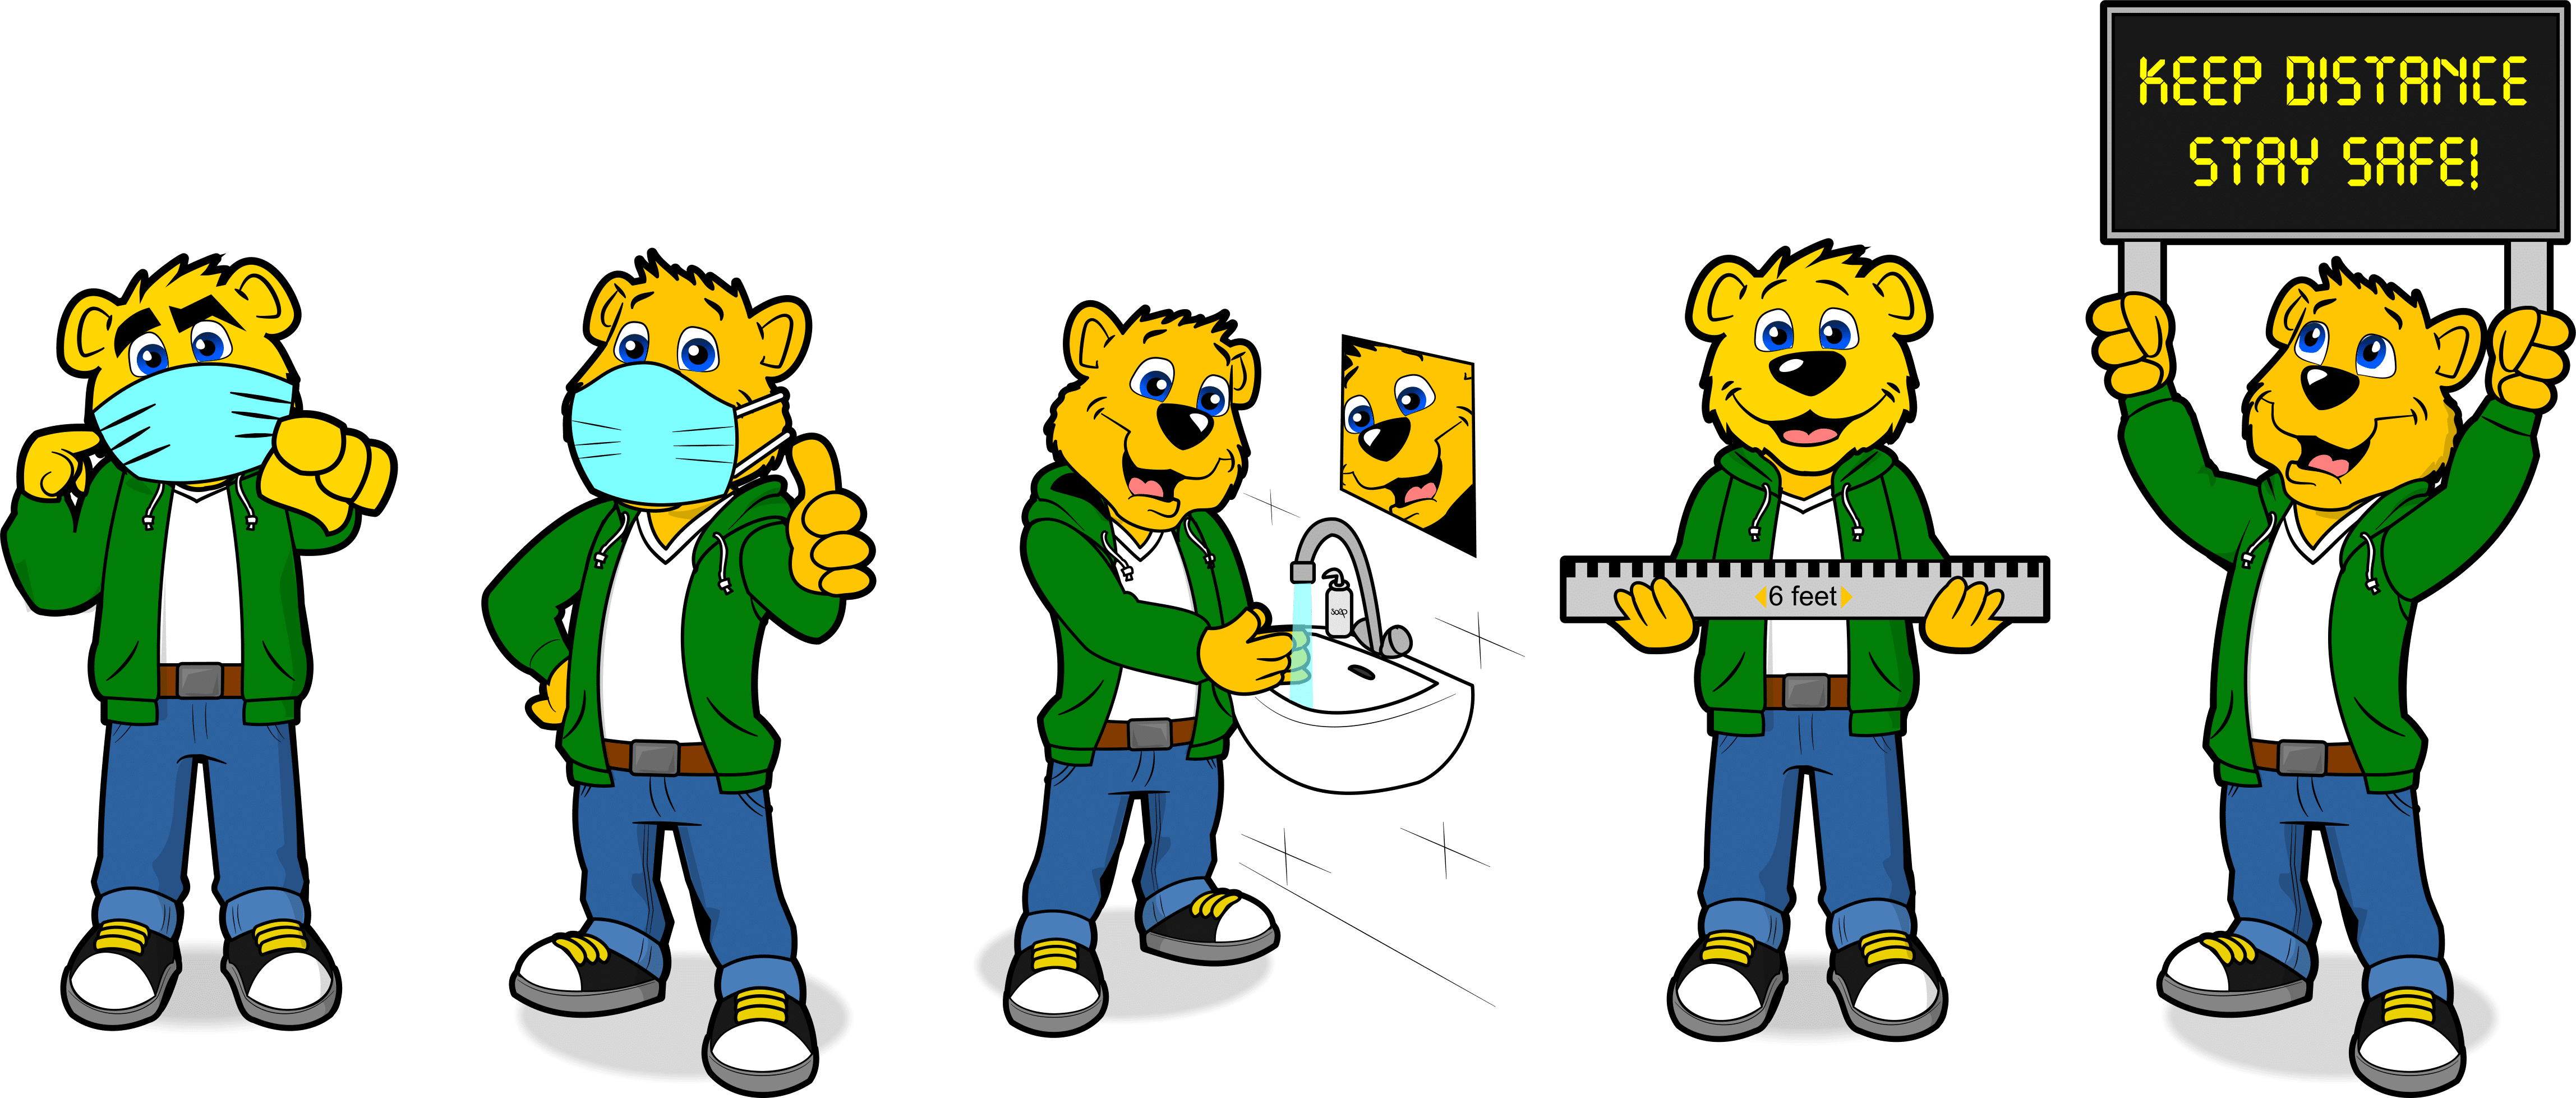 Bear Mascot in various poses